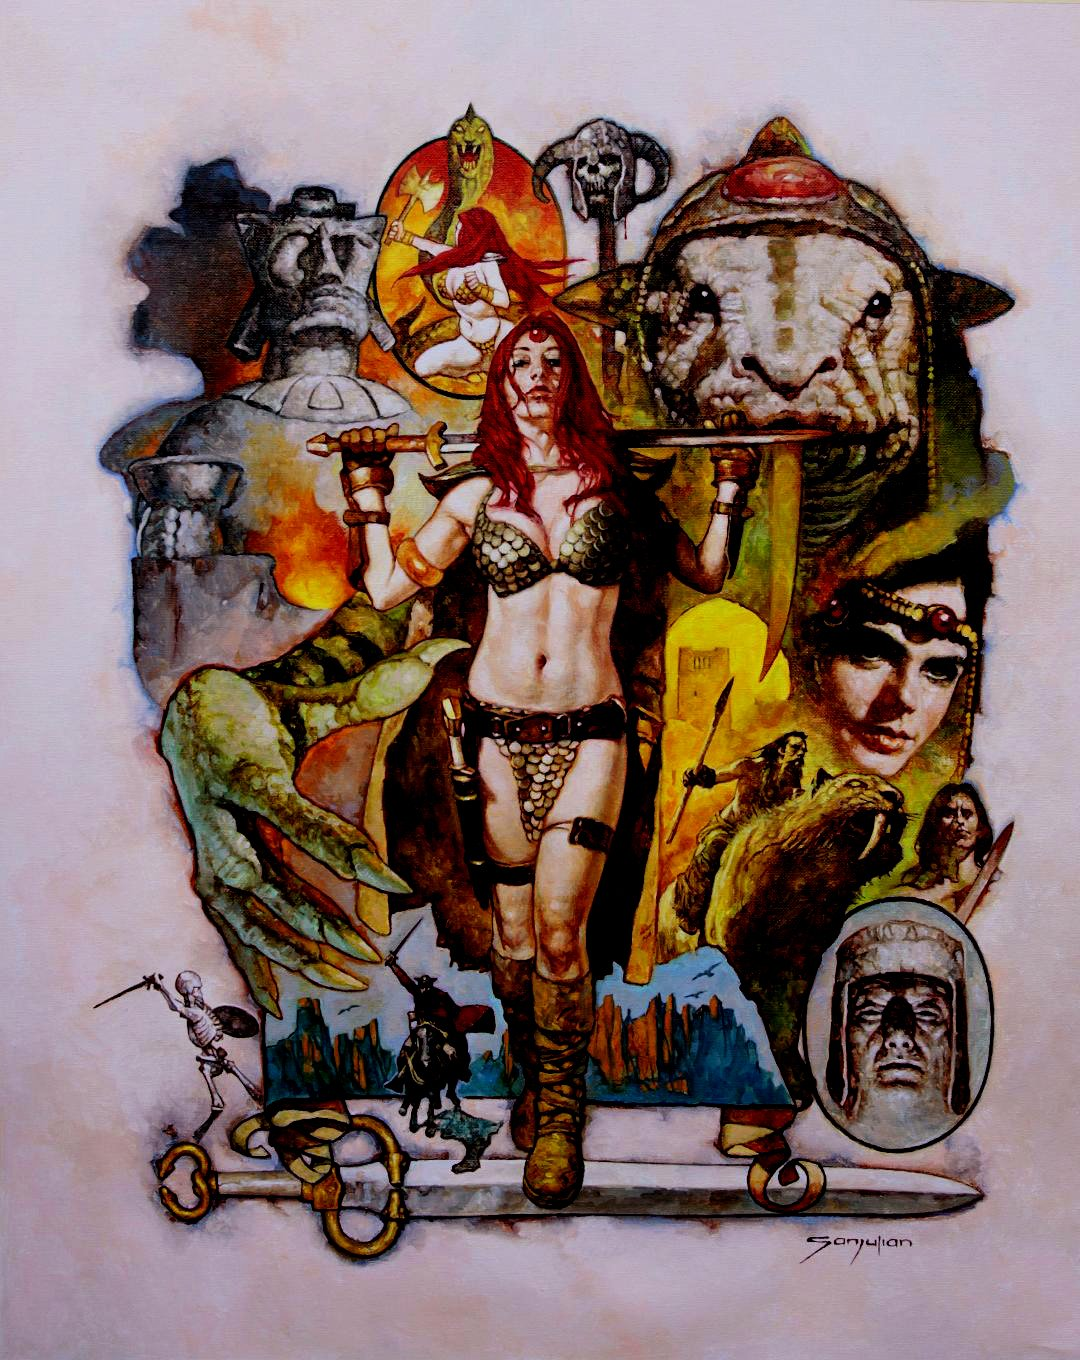 Red Sonja VERY Sexy Detailed Large Painting On Canvas